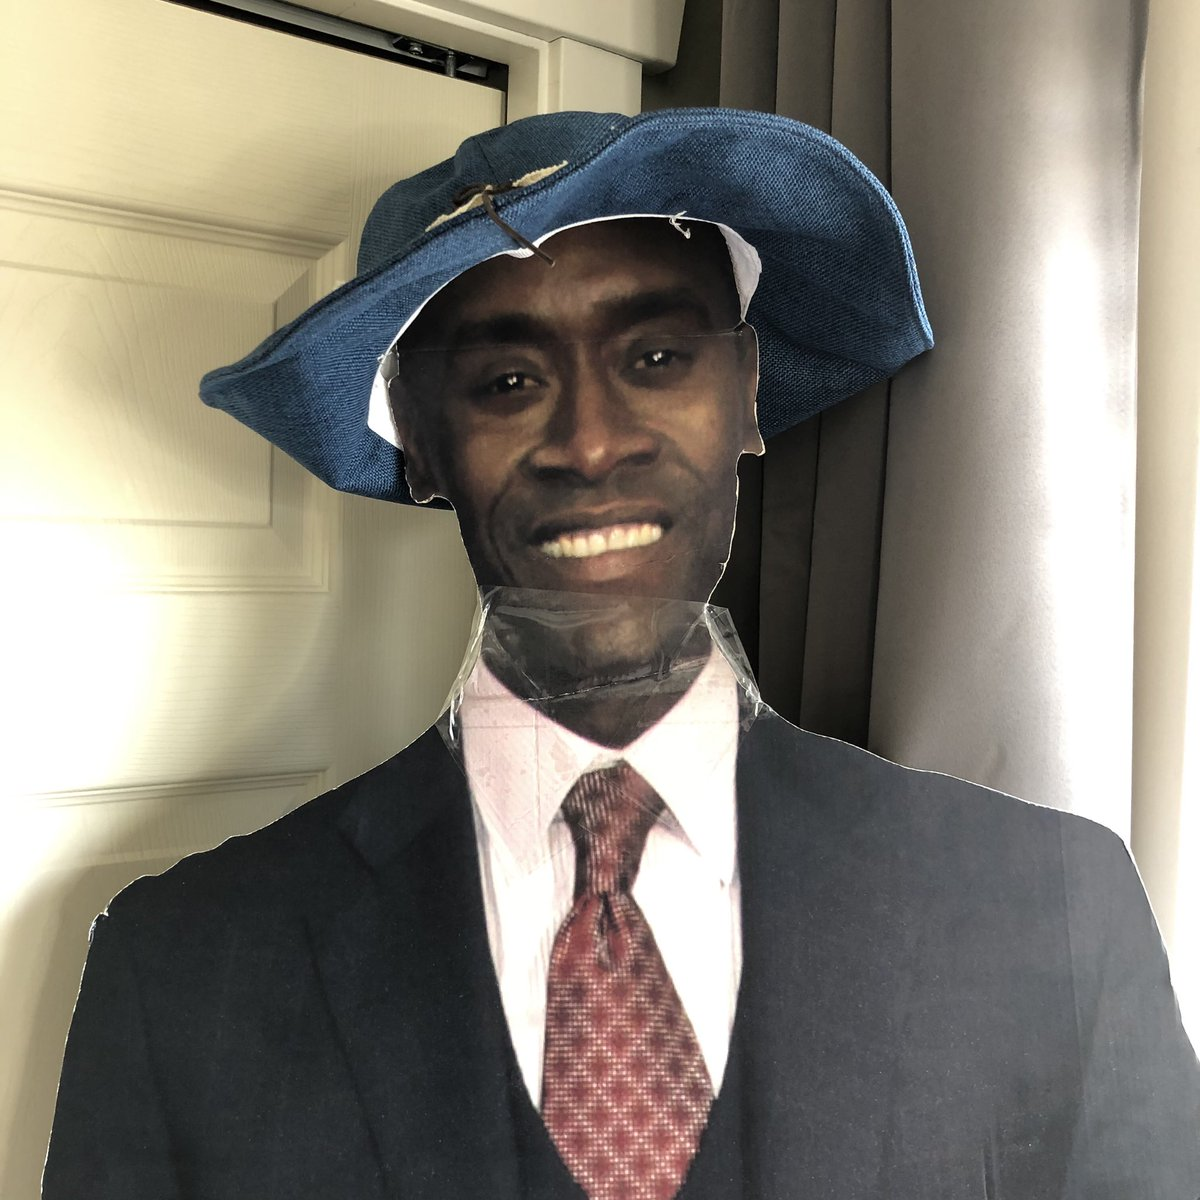 I leave for A FEW DAYS only to find Don went fancy hat shopping without me smh